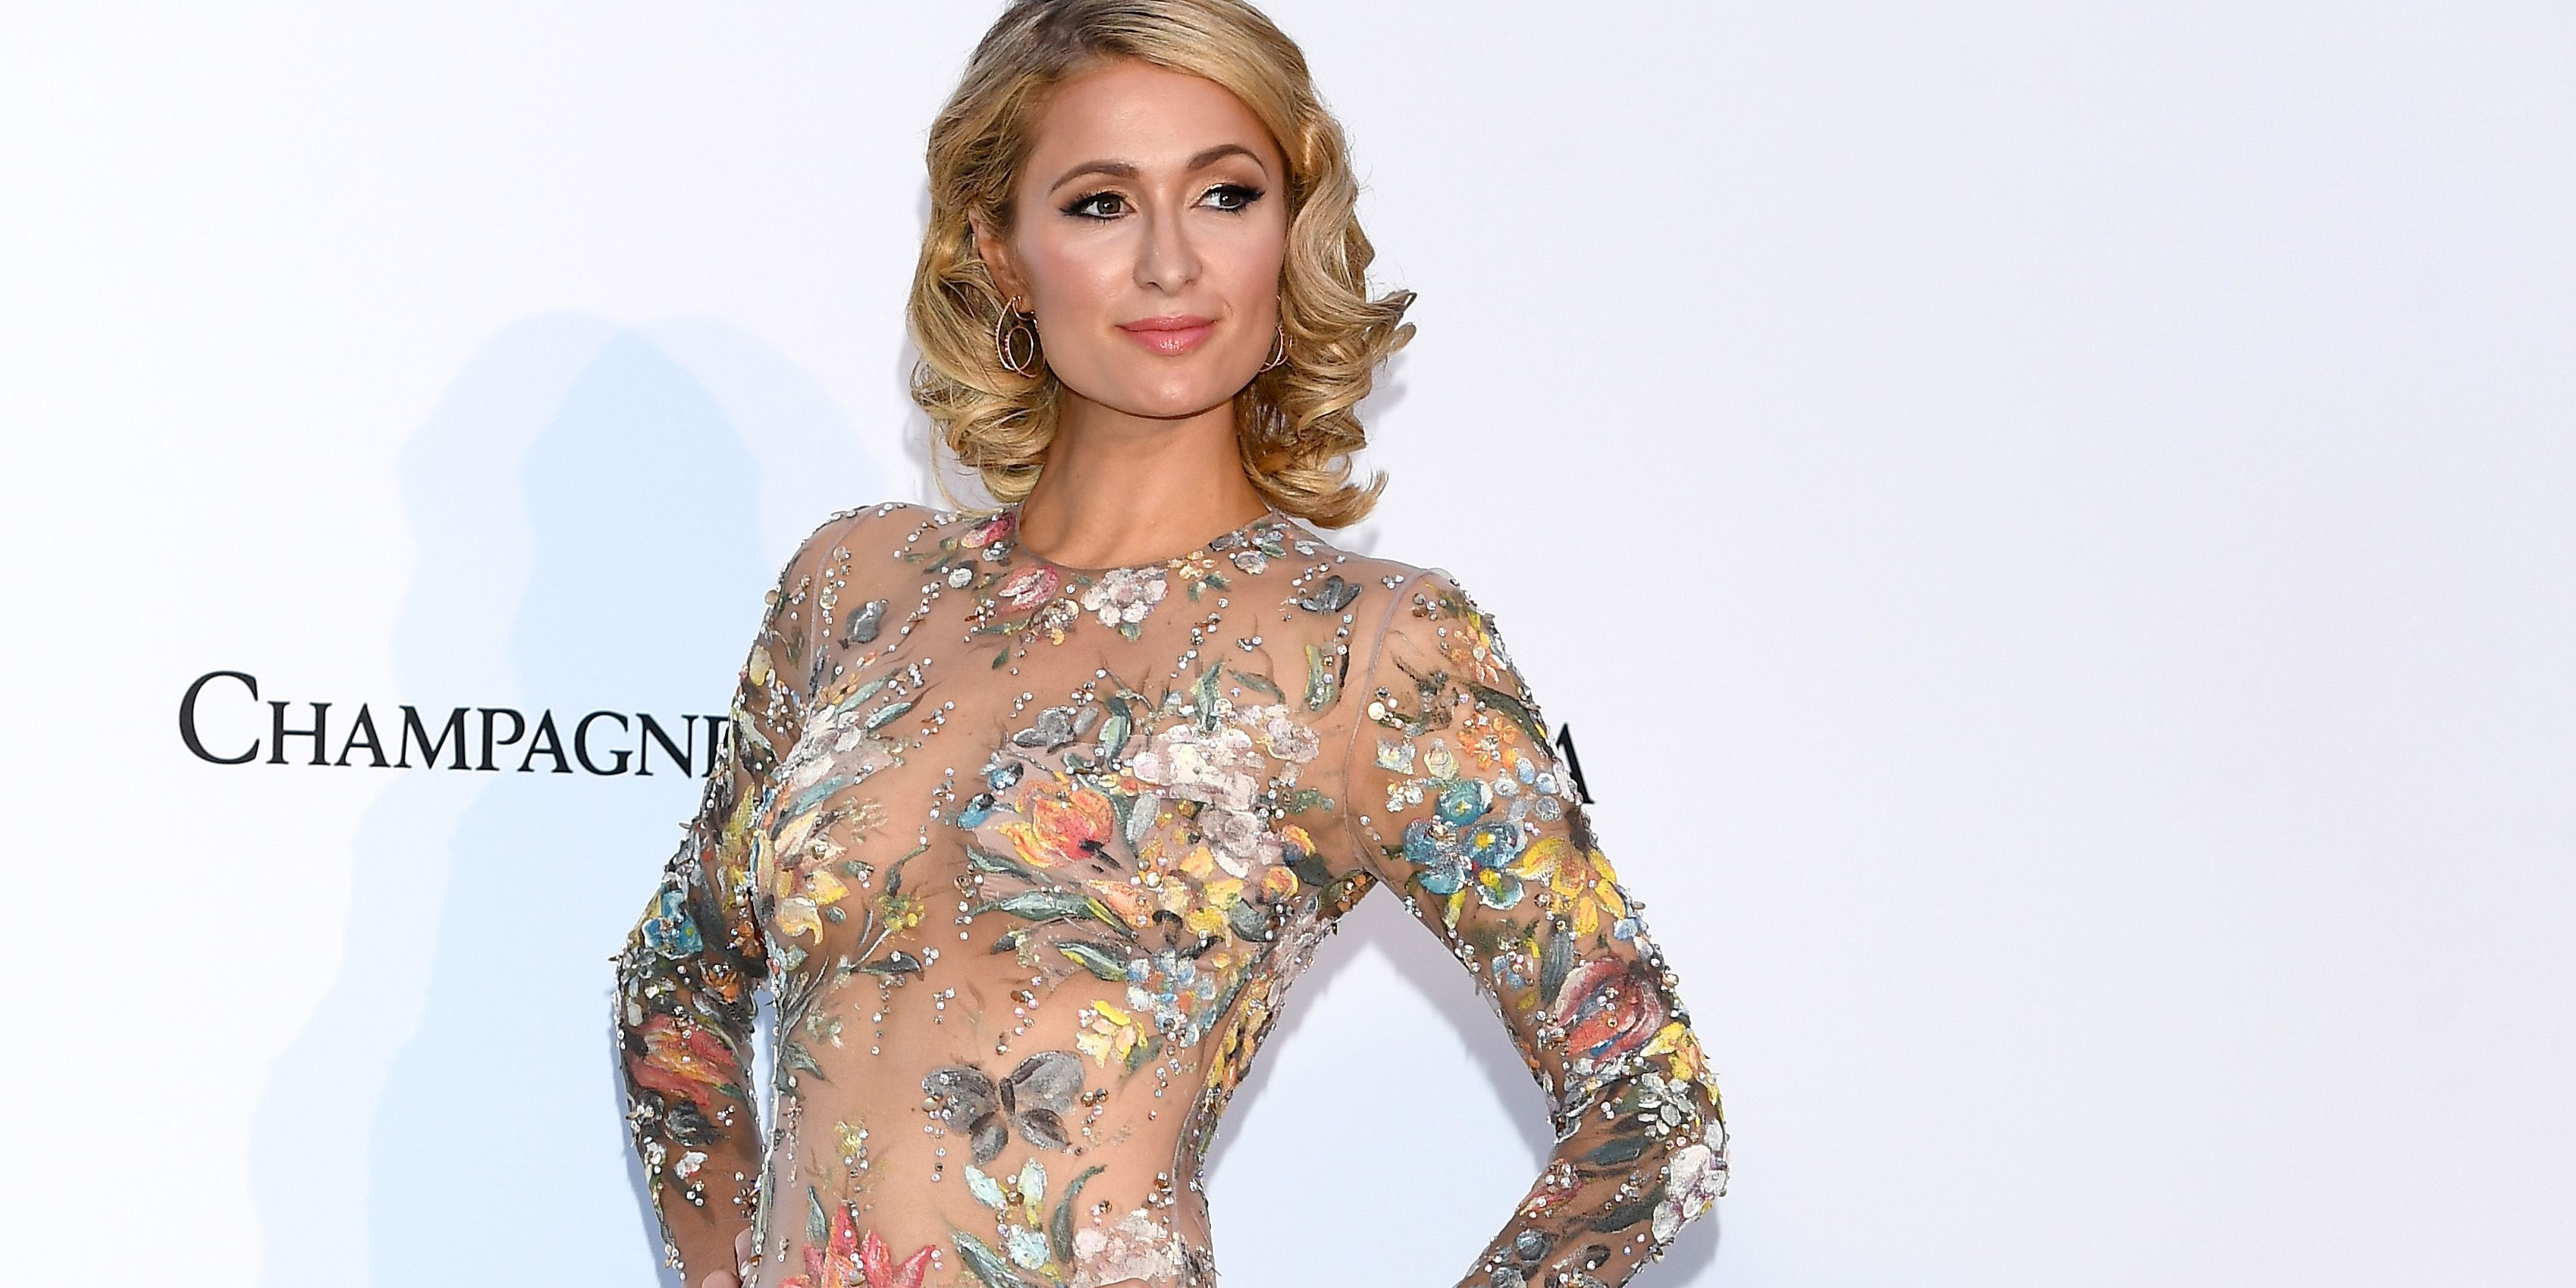 Paris Hilton Wears Naked Floral Dress at Cannes Film Festival